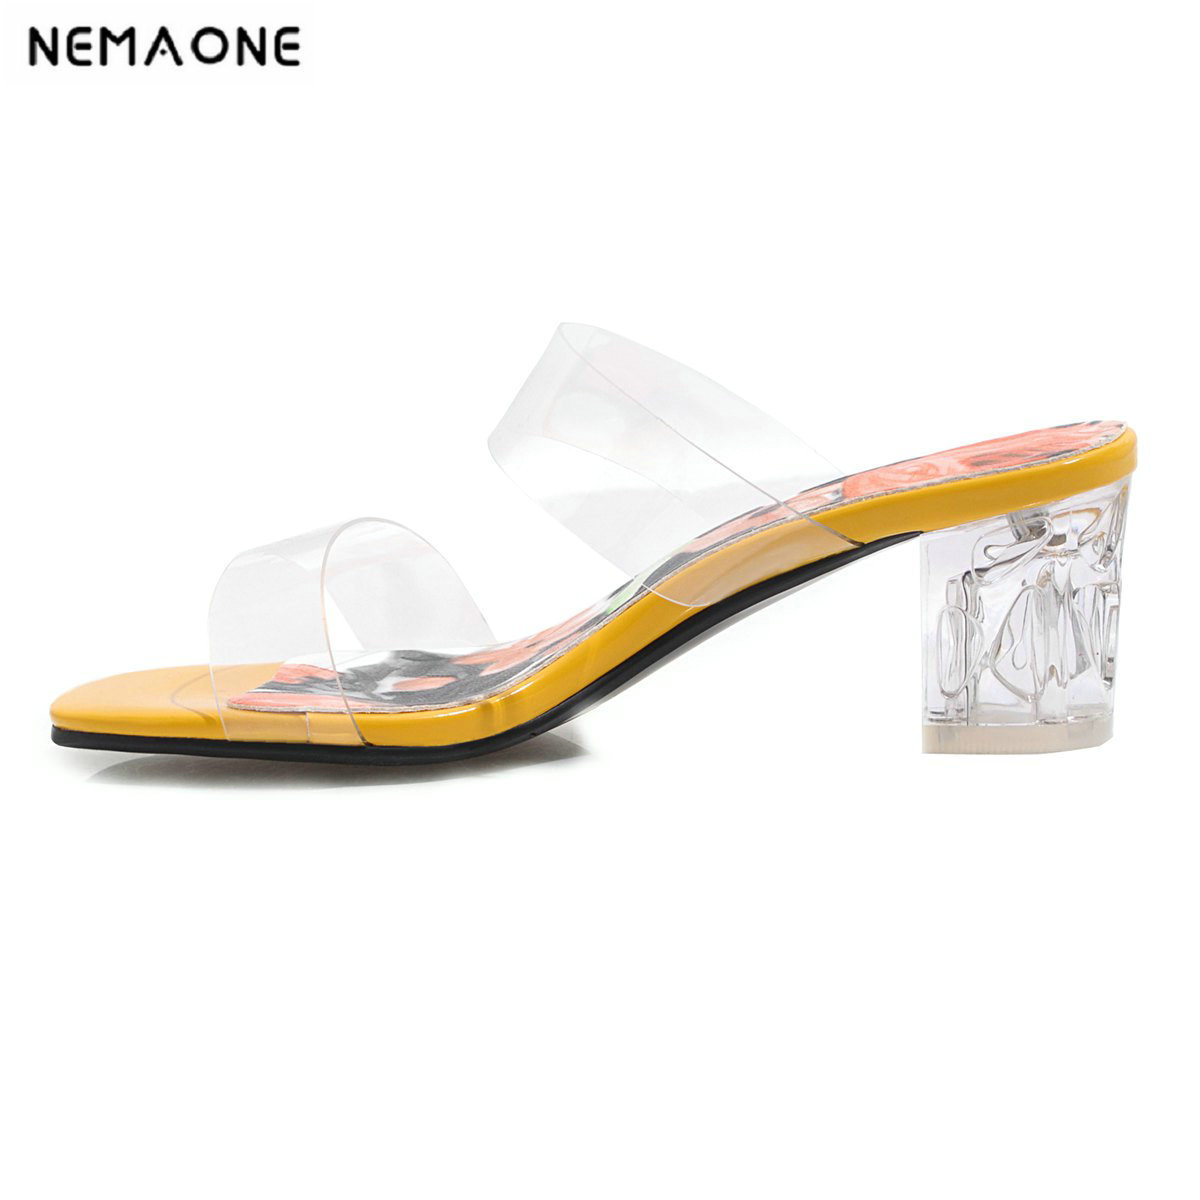 NEMAONE PVC Jelly Slippers Sandals Open Toe Square heel Women Transparent high heels women Slippers Shoes woman